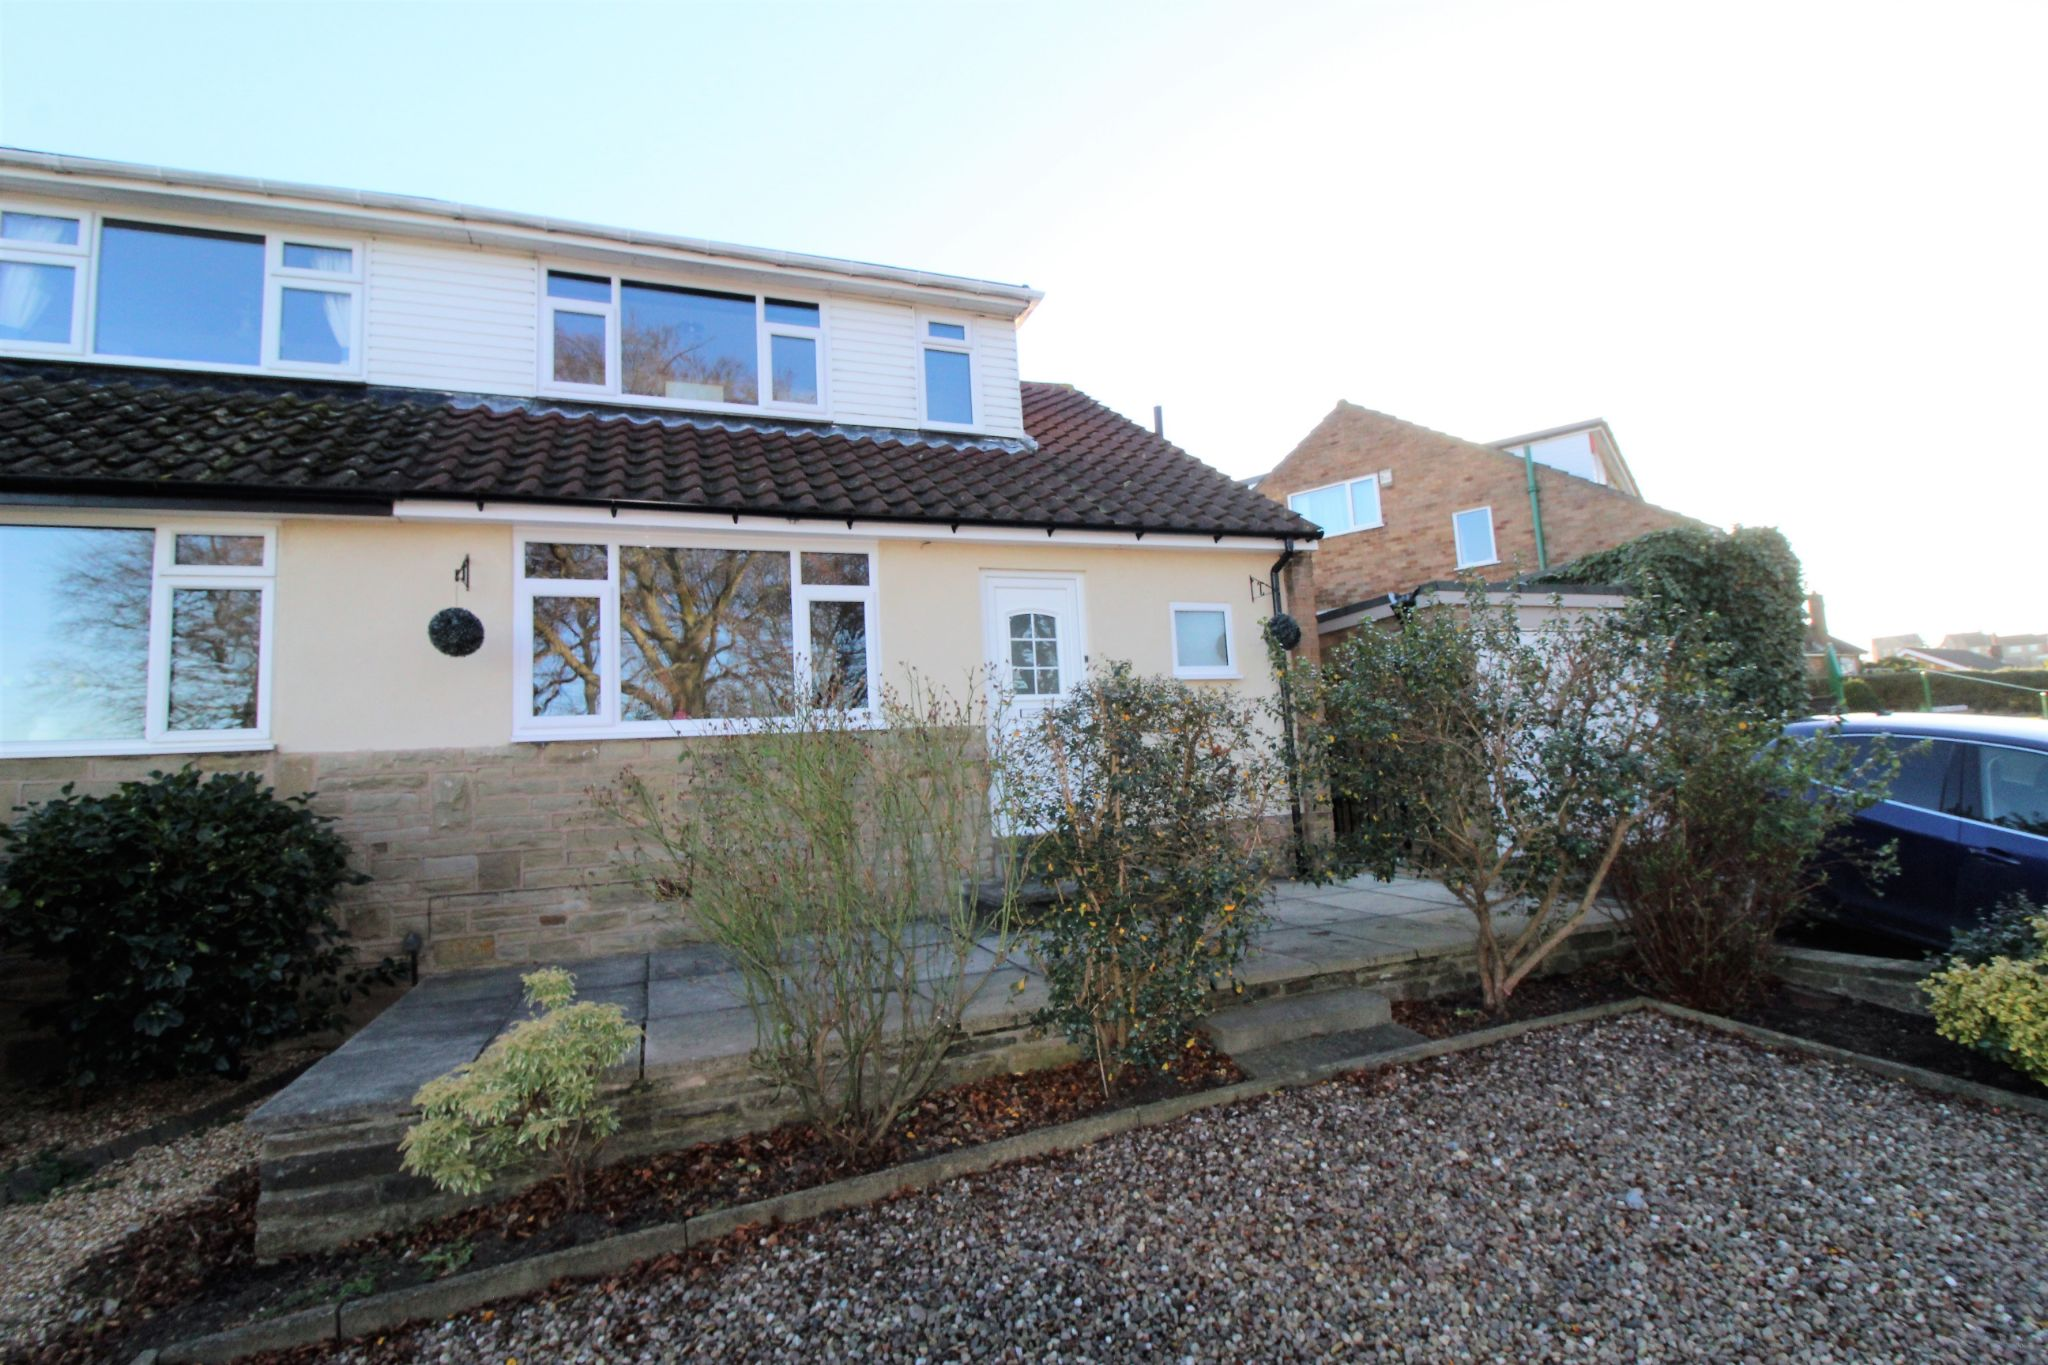 4 bedroom semi-detached bungalow SSTC in Brighouse - Front elevation